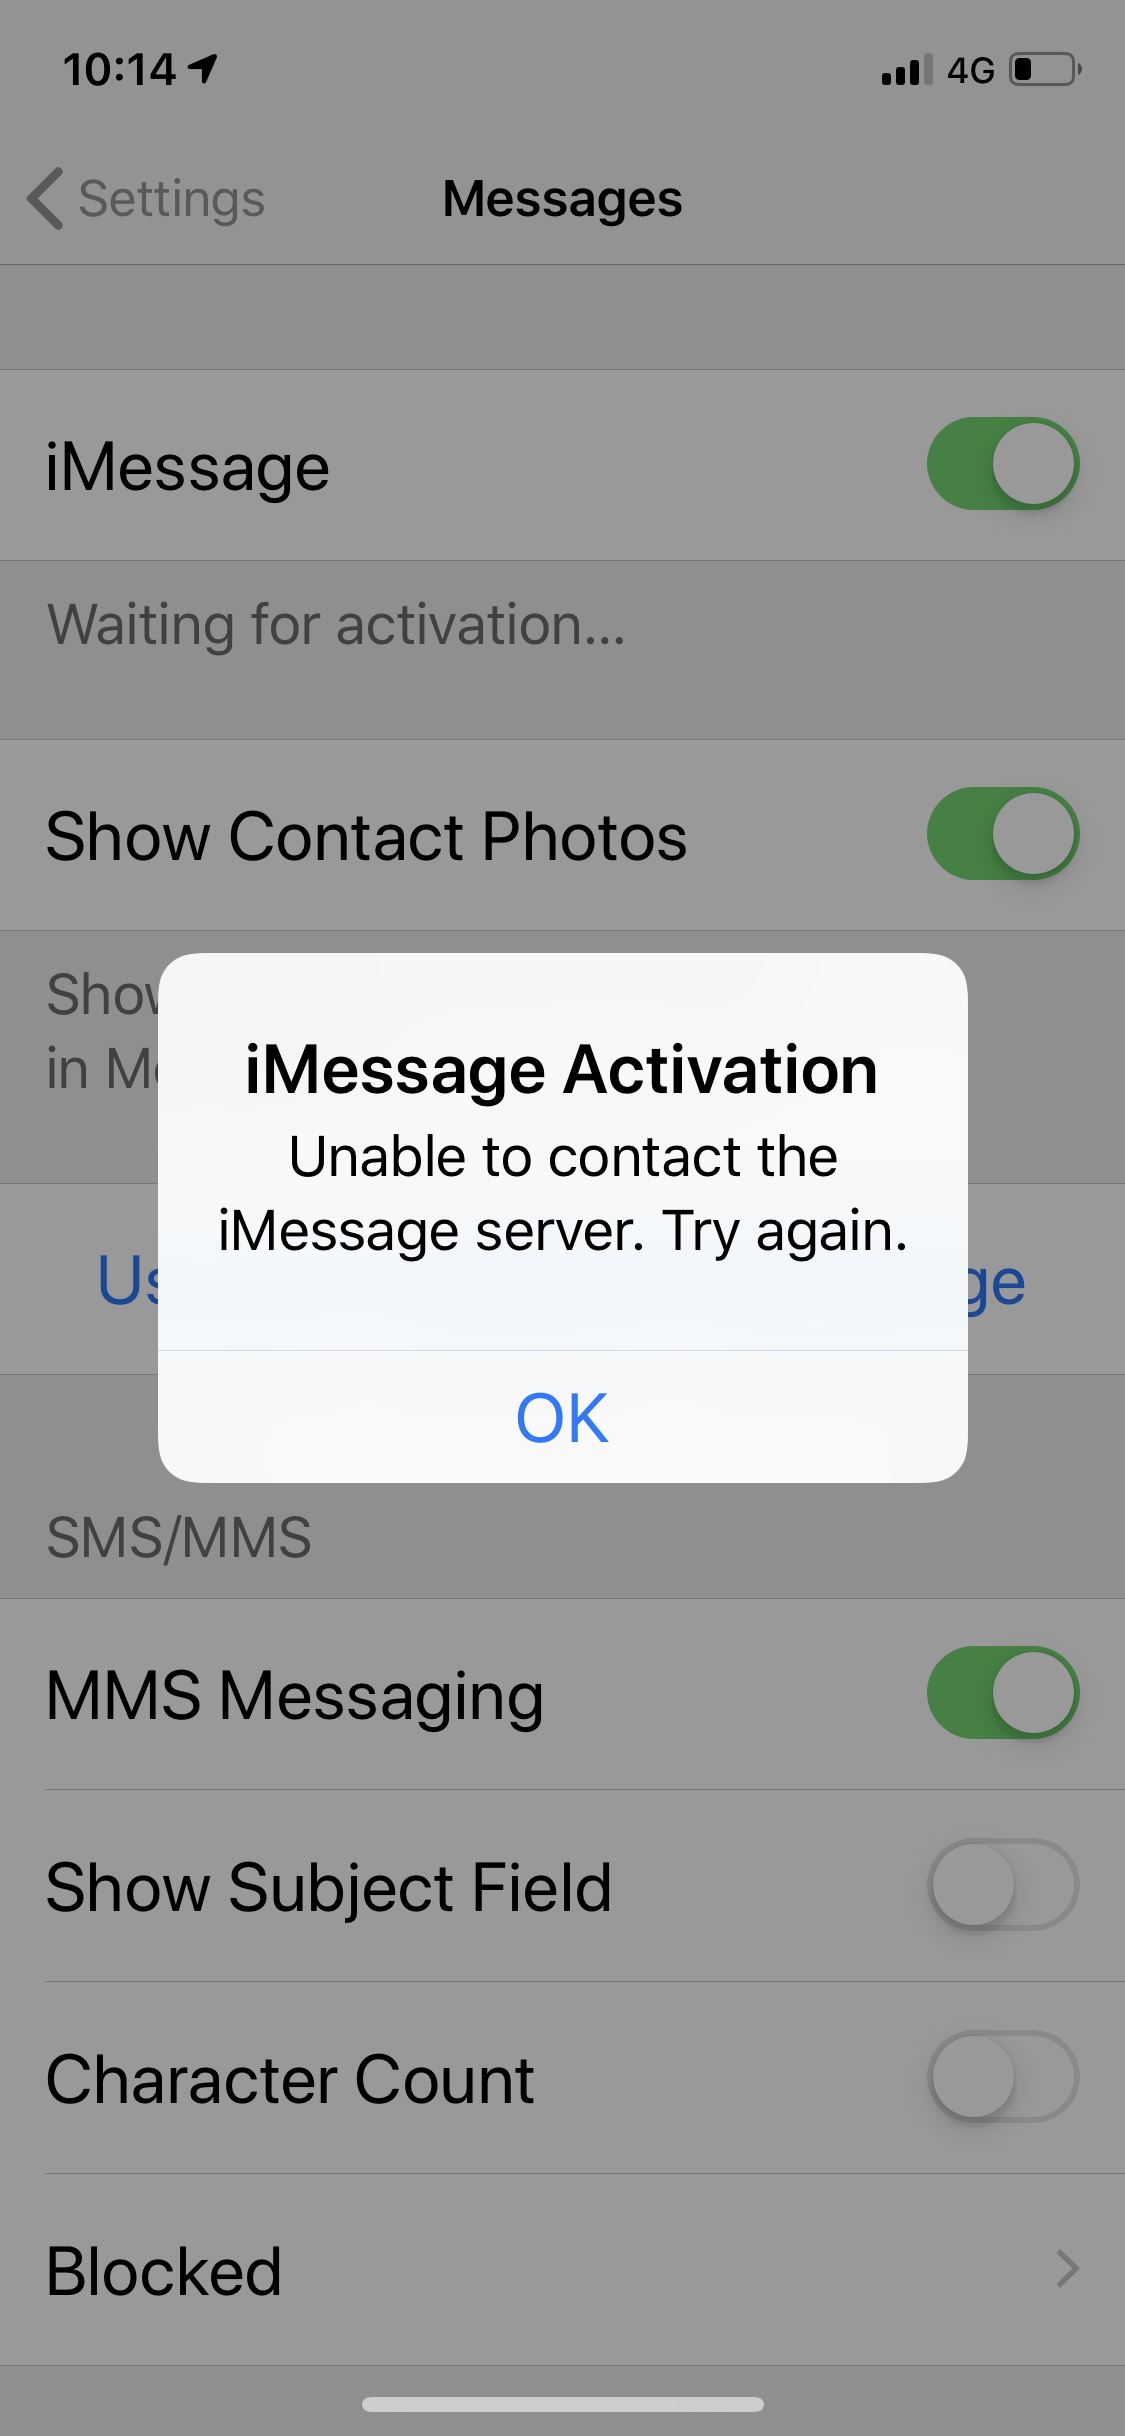 iMessage stopped working - Apple Community